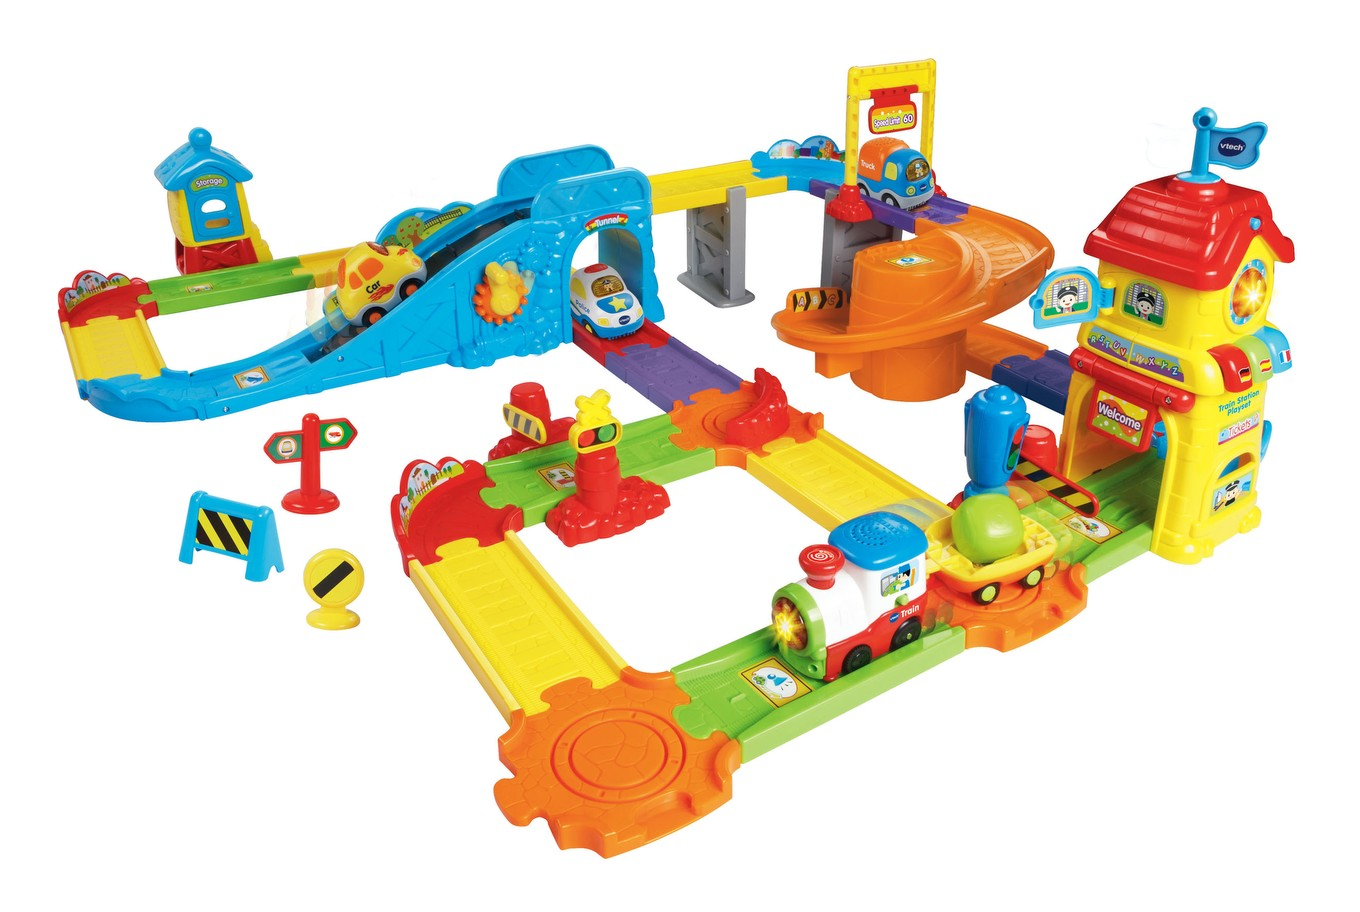 Wheels Go Station Playset Train Smart Go